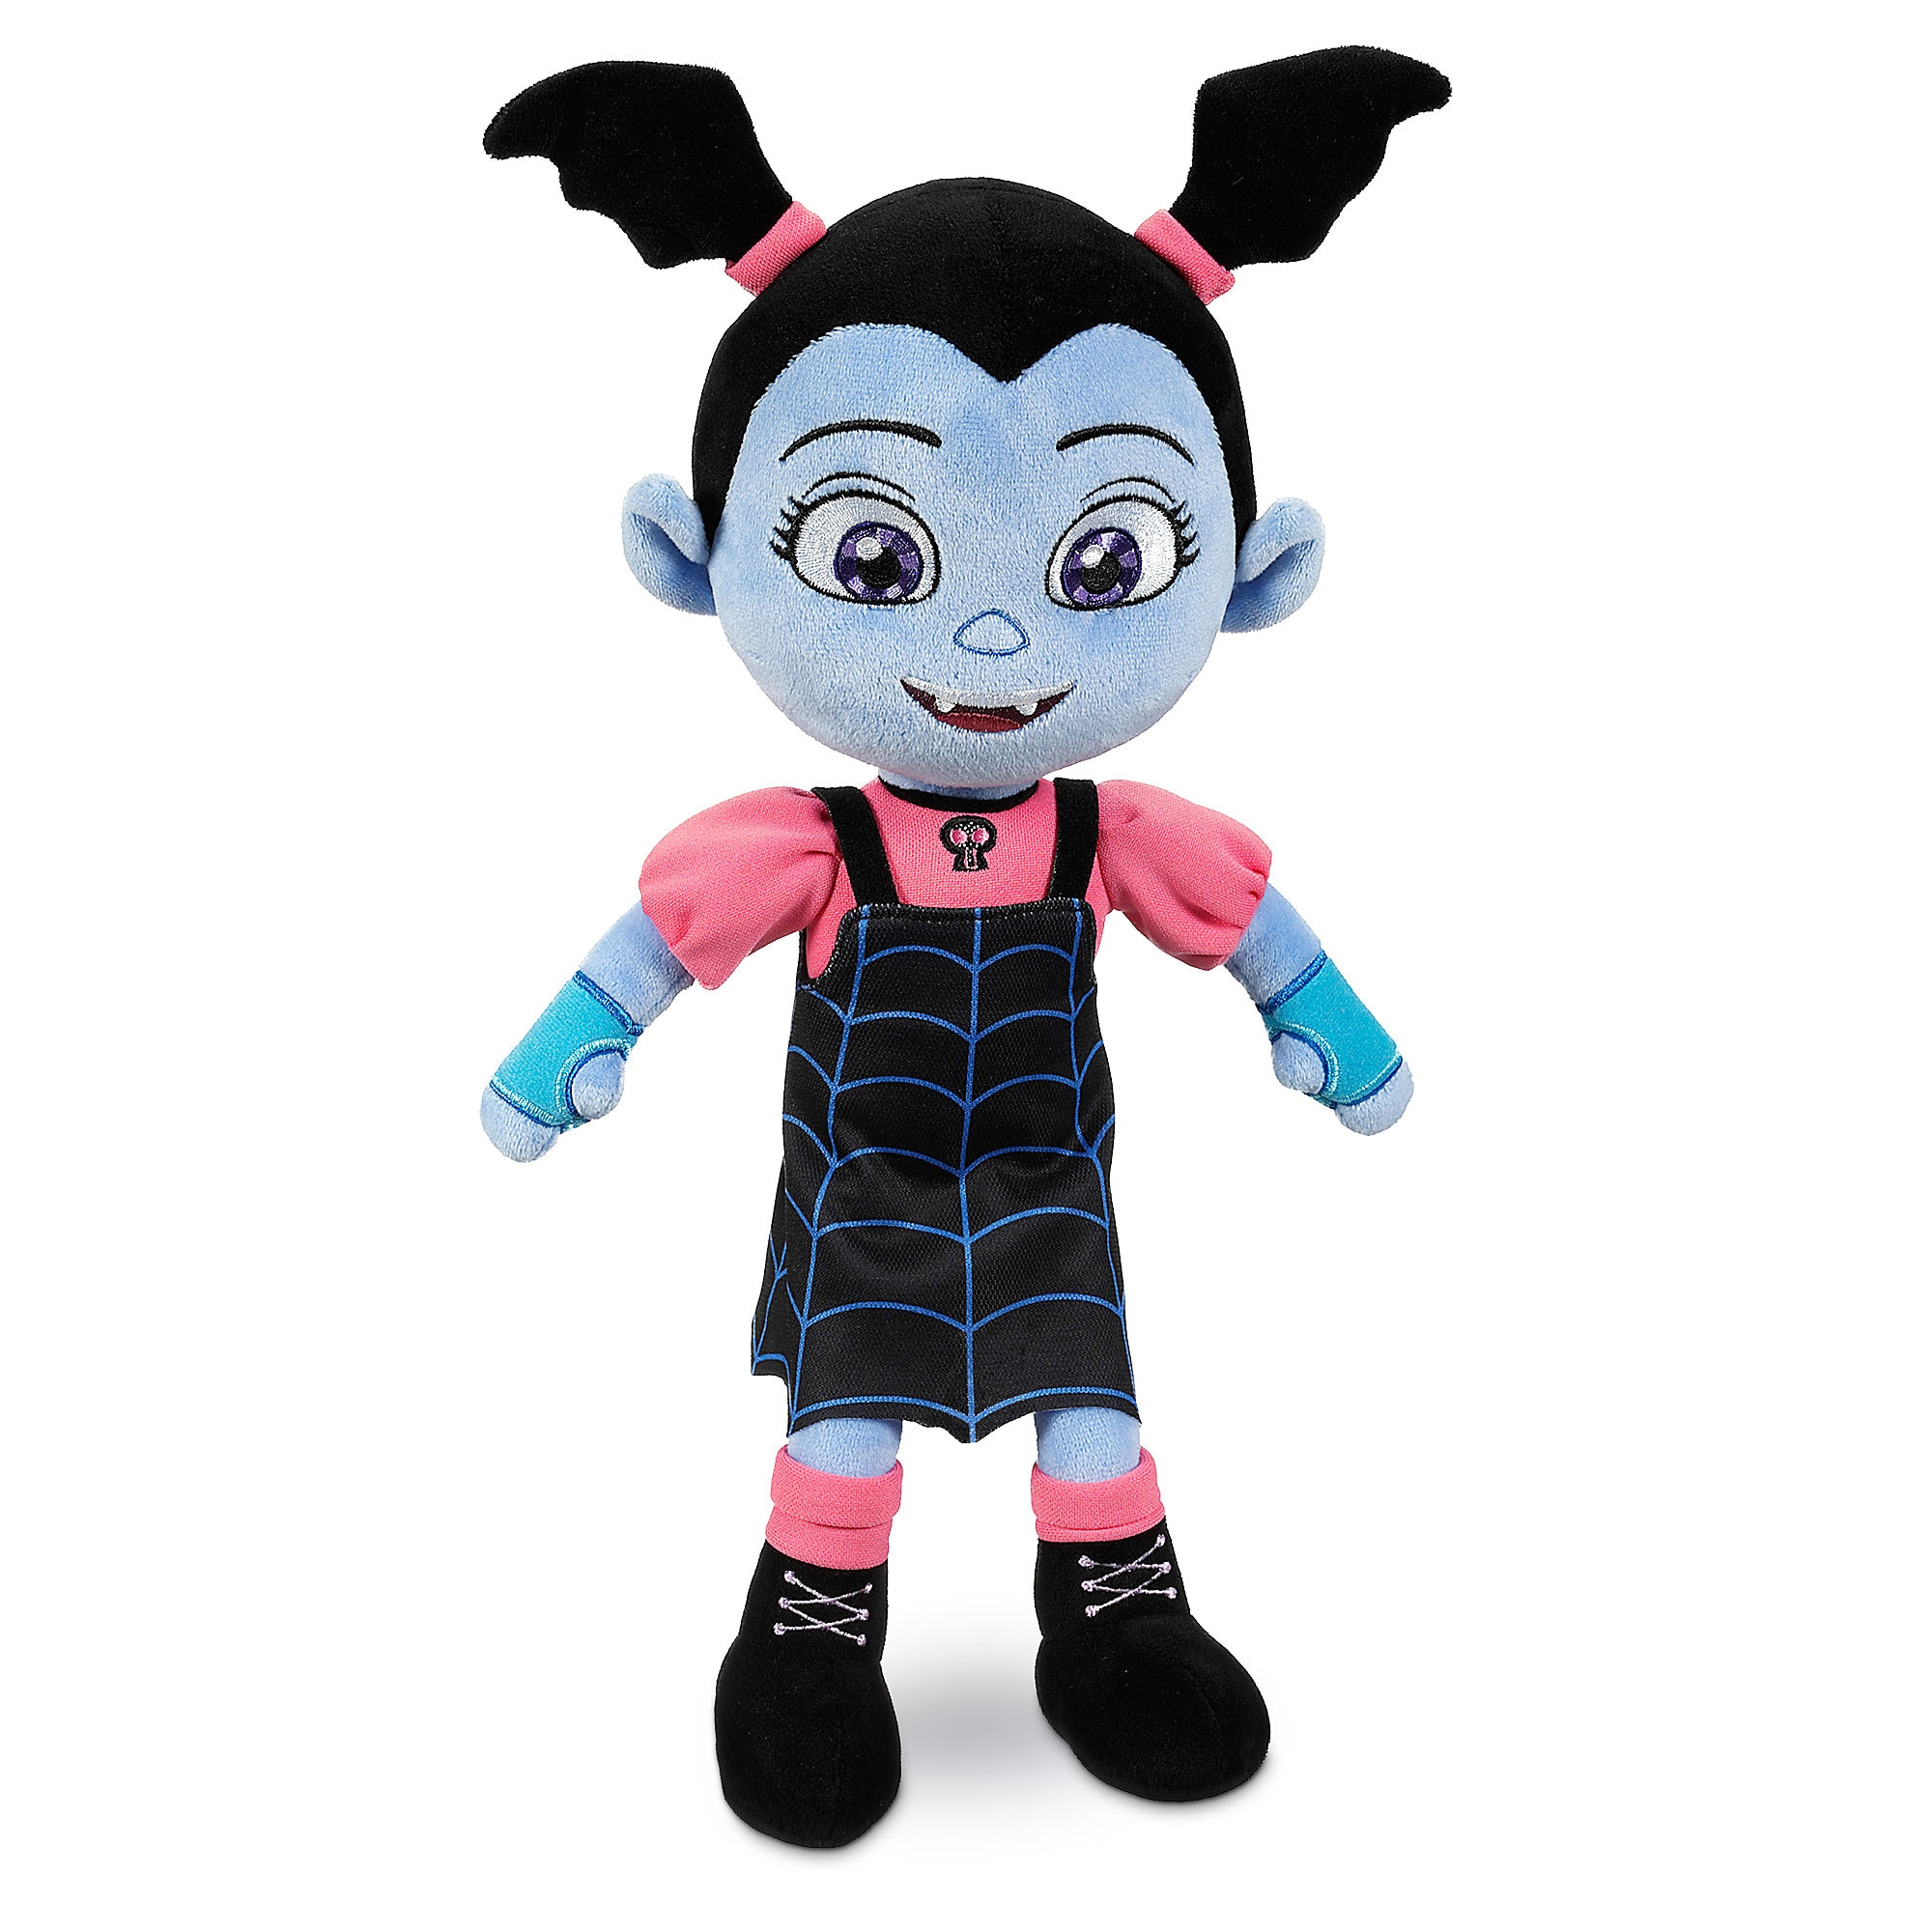 Vampirina Plush Doll 13 12 ShopDisney